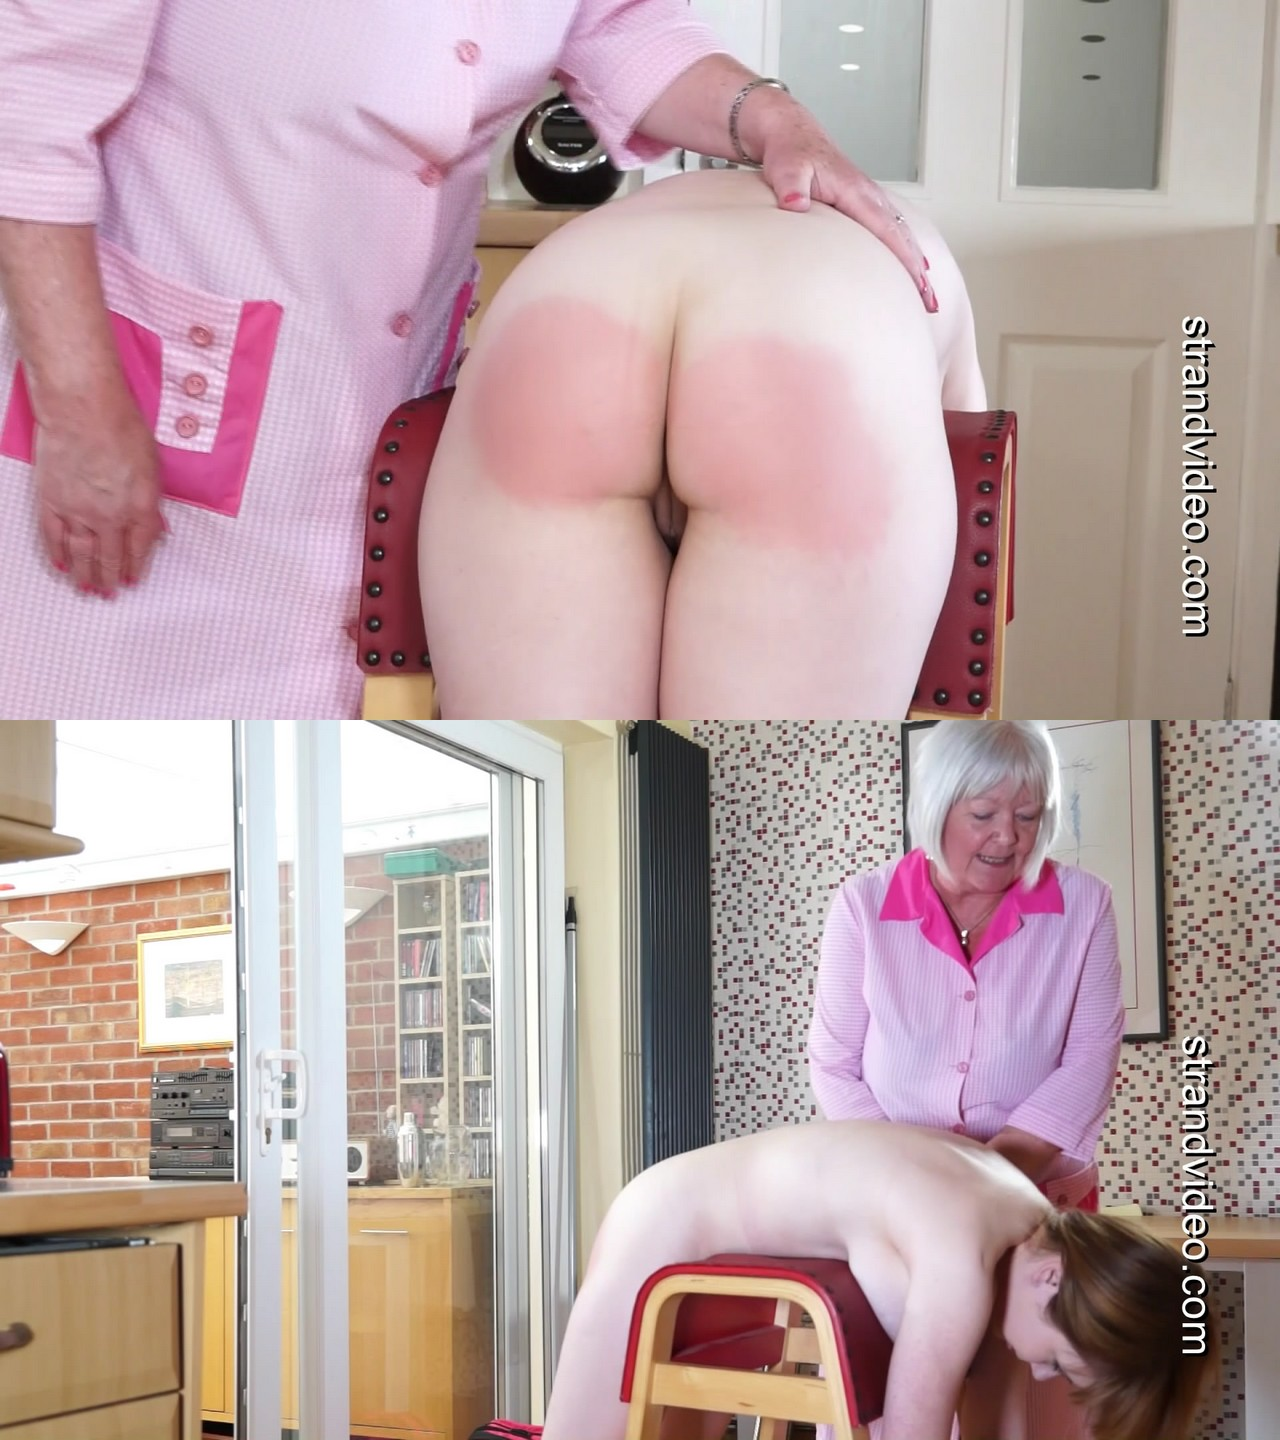 Spanking Sarah – MP4/Full HD – Cherry, Katie Didit -Cherry Reports To House Of Correction